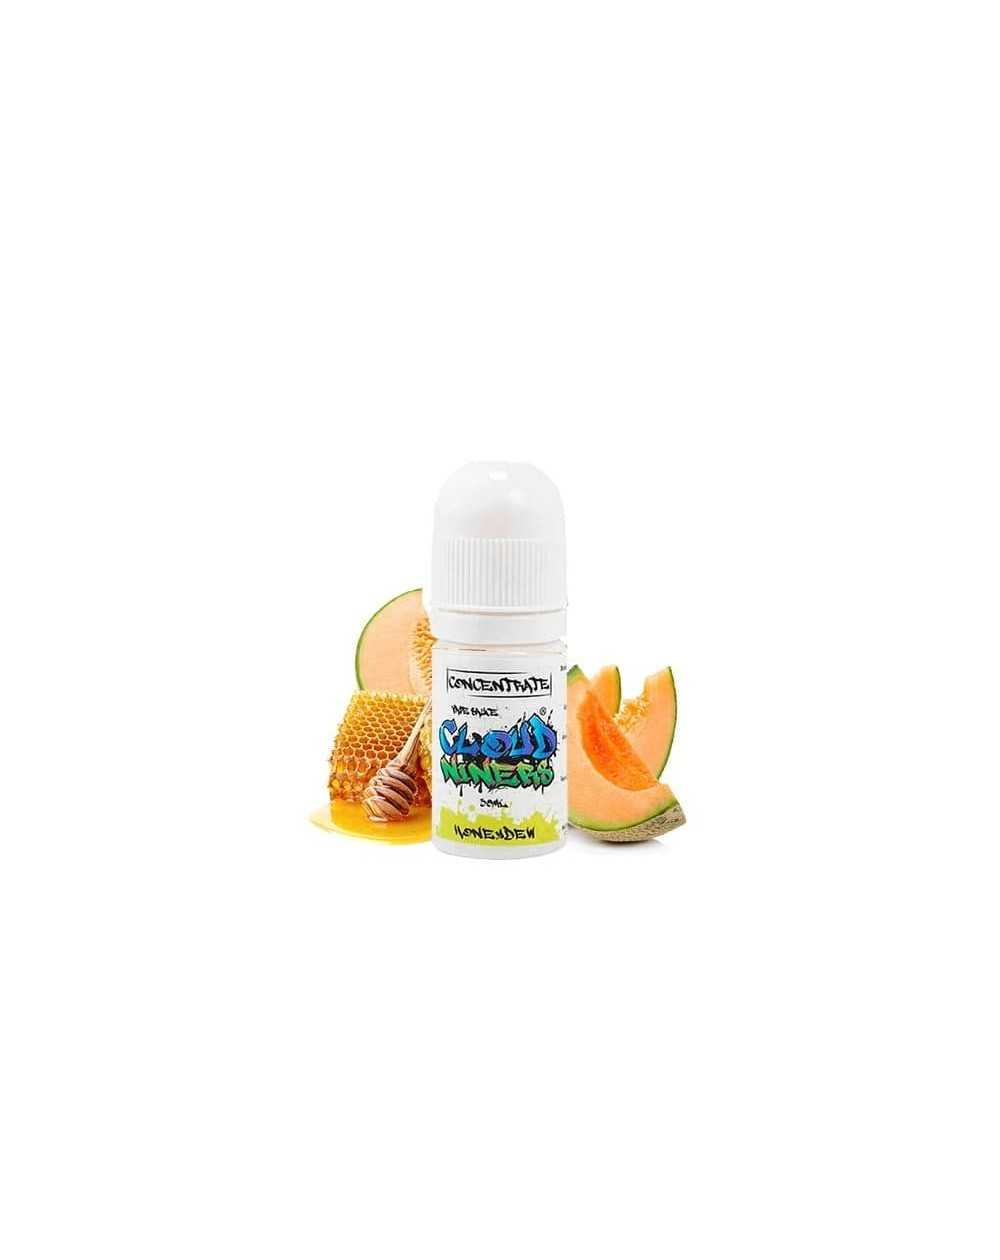 Concentrated aroma Honeydew 30ml - Cloud Niners-1